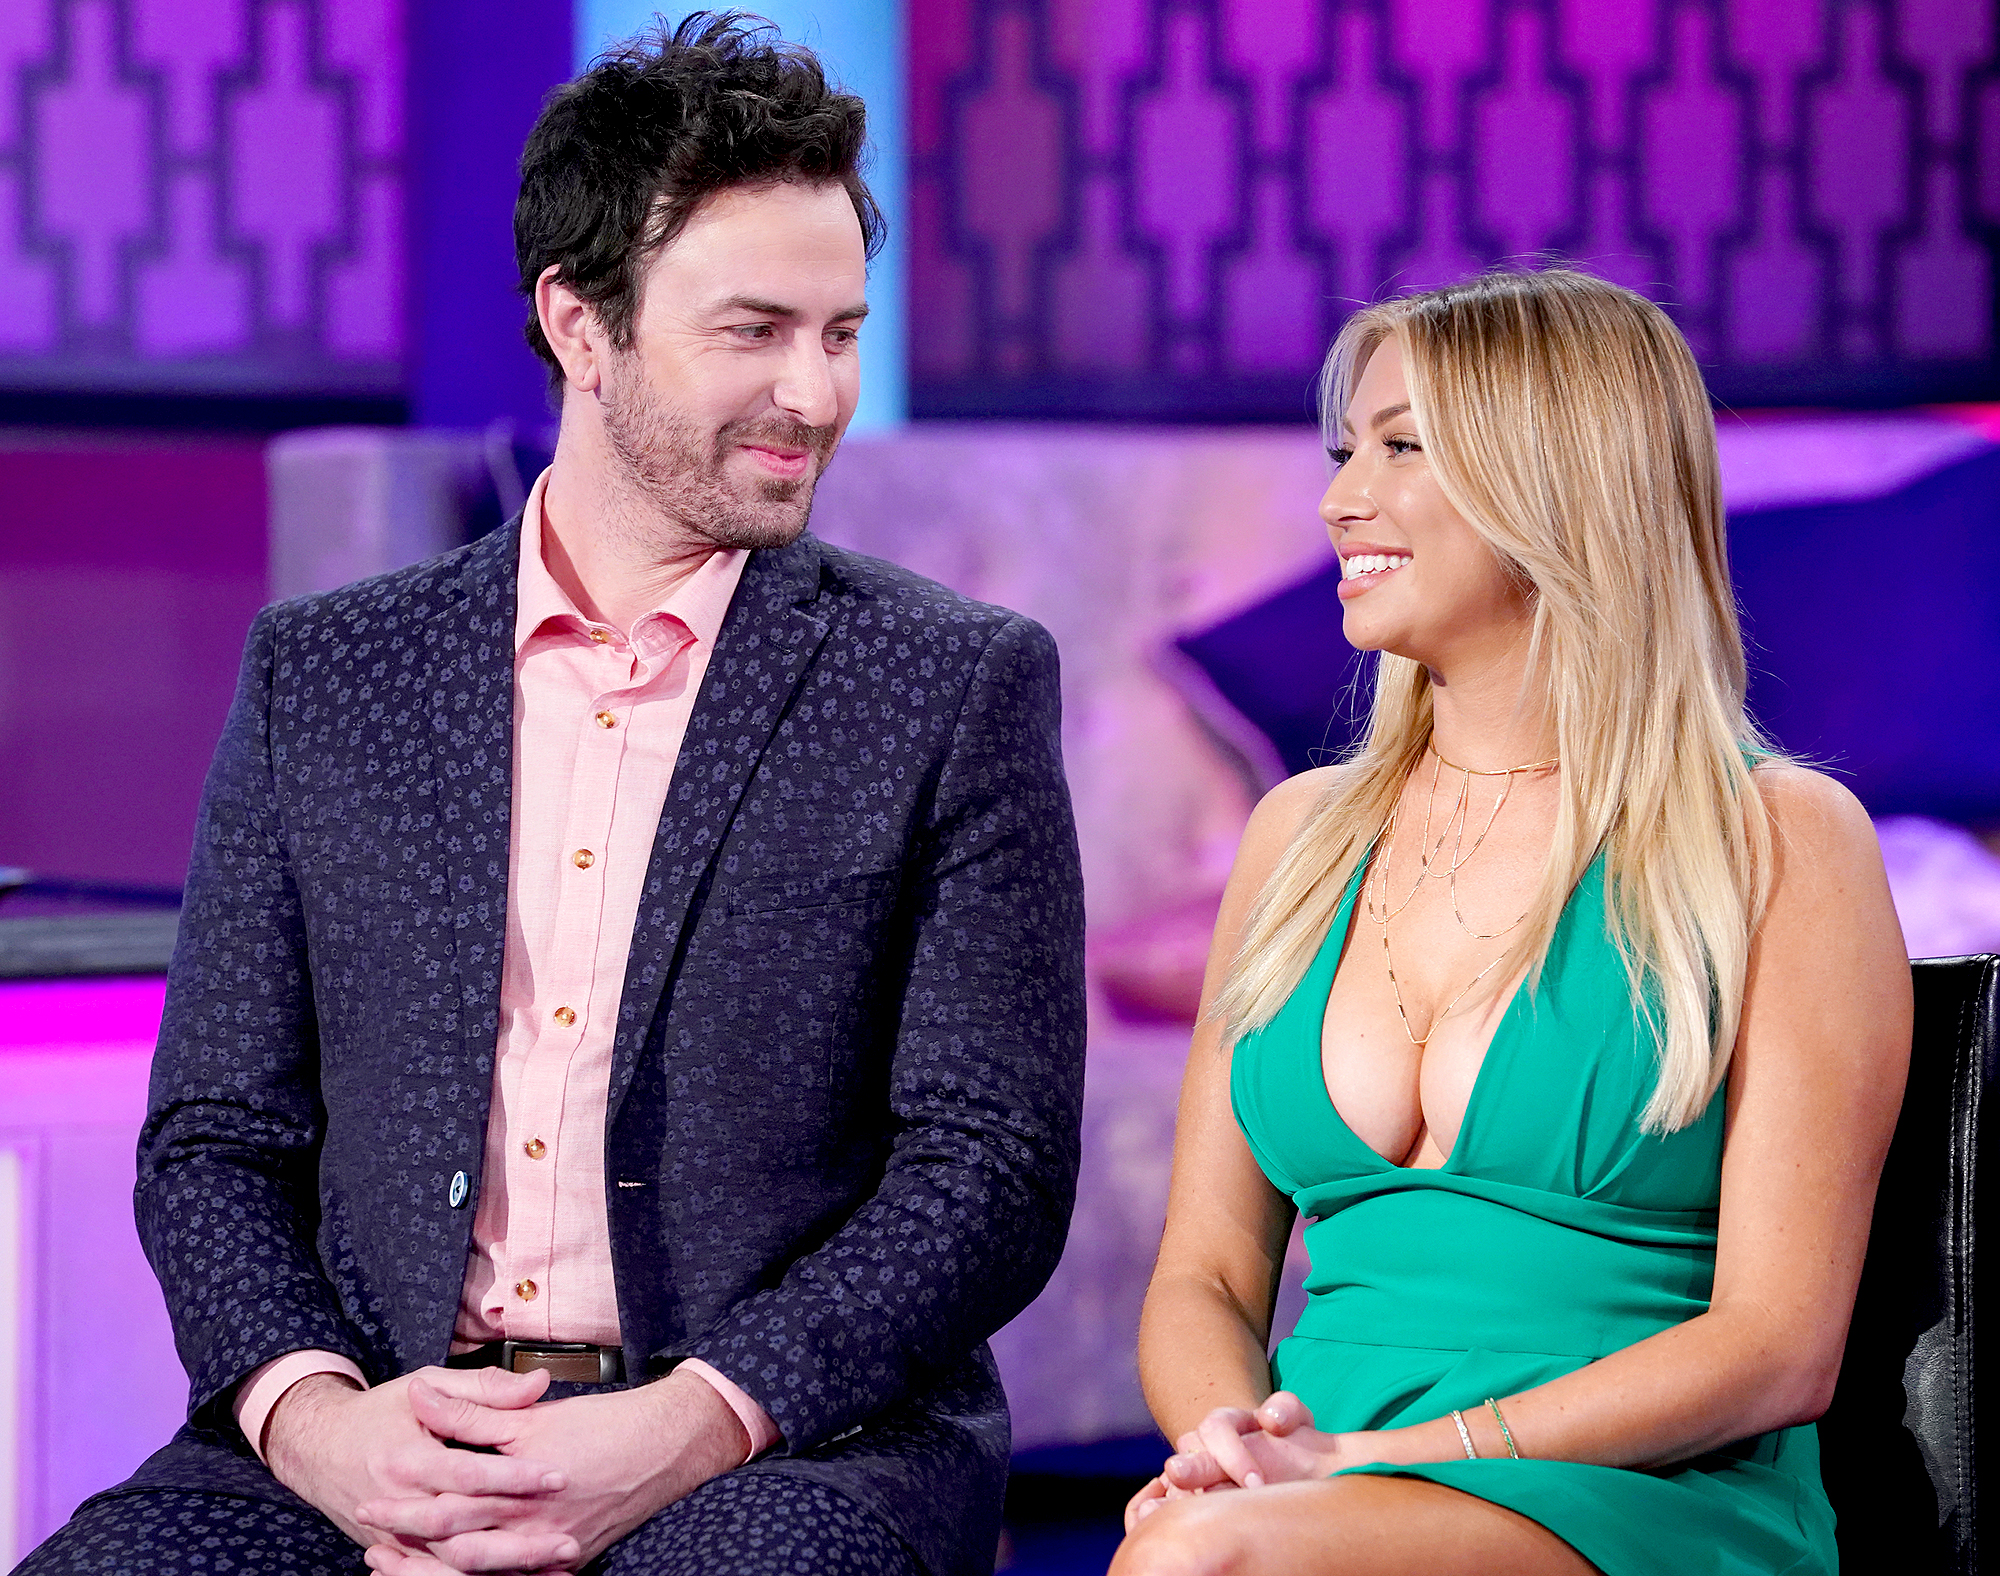 Stassi-Schroeder-Quit-Taking-Adderall-After-Argument-With-Beau-Clark